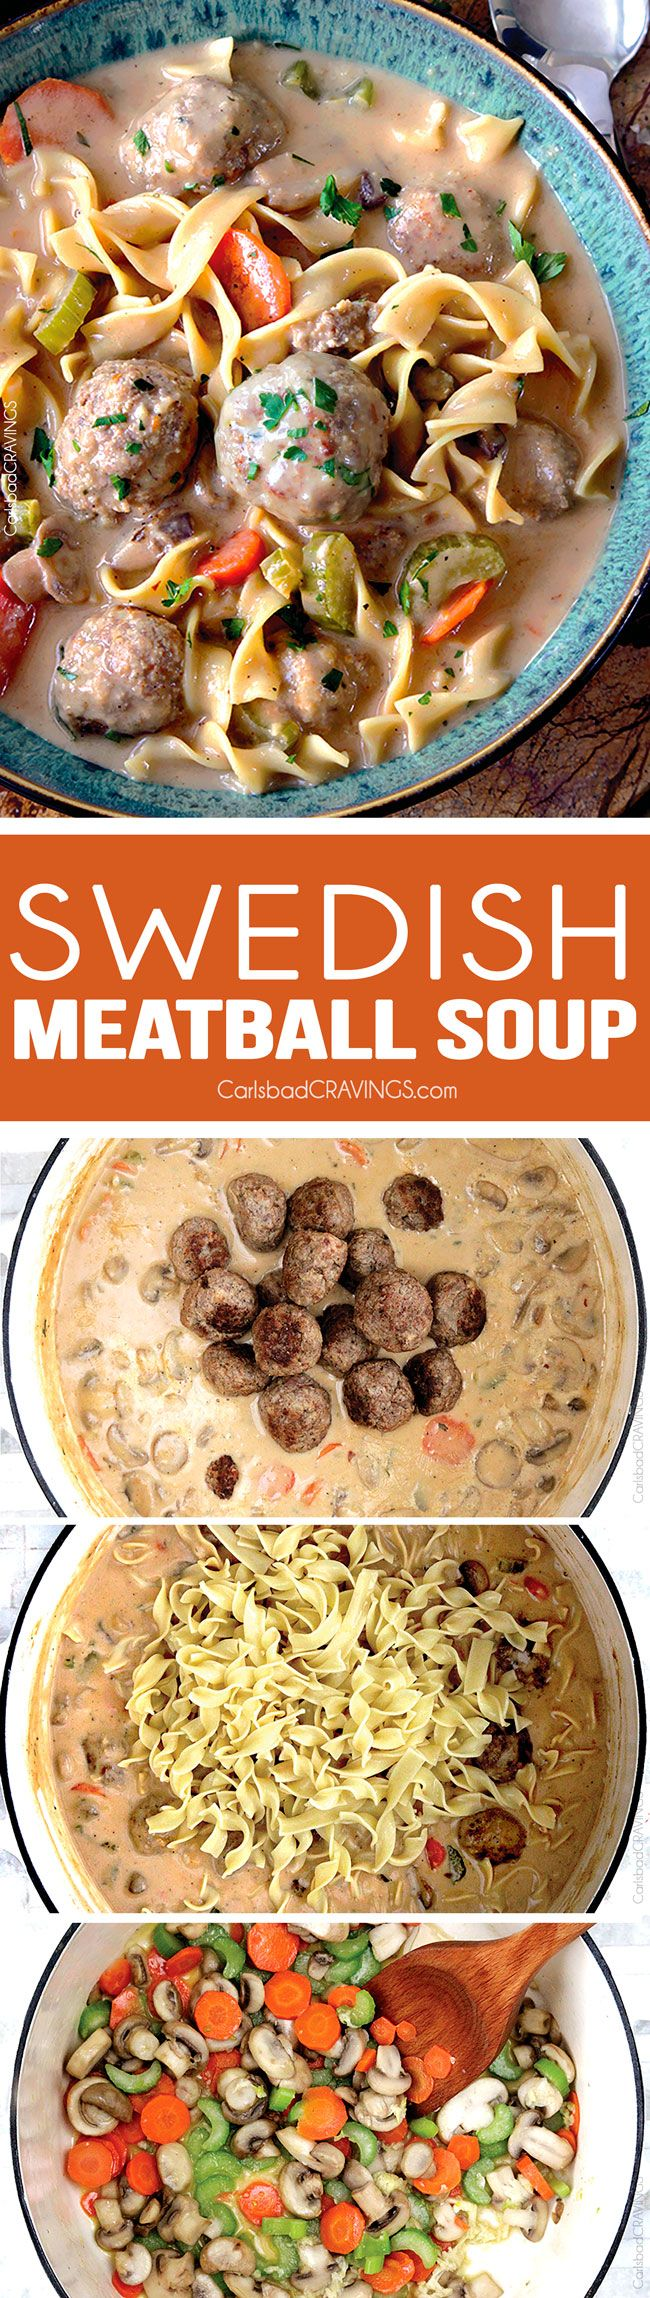 Swedish Meatball Soup - my favorite way to eat Swedish meatballs and this meal goes from meatballs to soup in a flash with the most tender, flavorful meatballs in a luscious creamy brown gravy broth swirled with sour cream- AH-mazing!